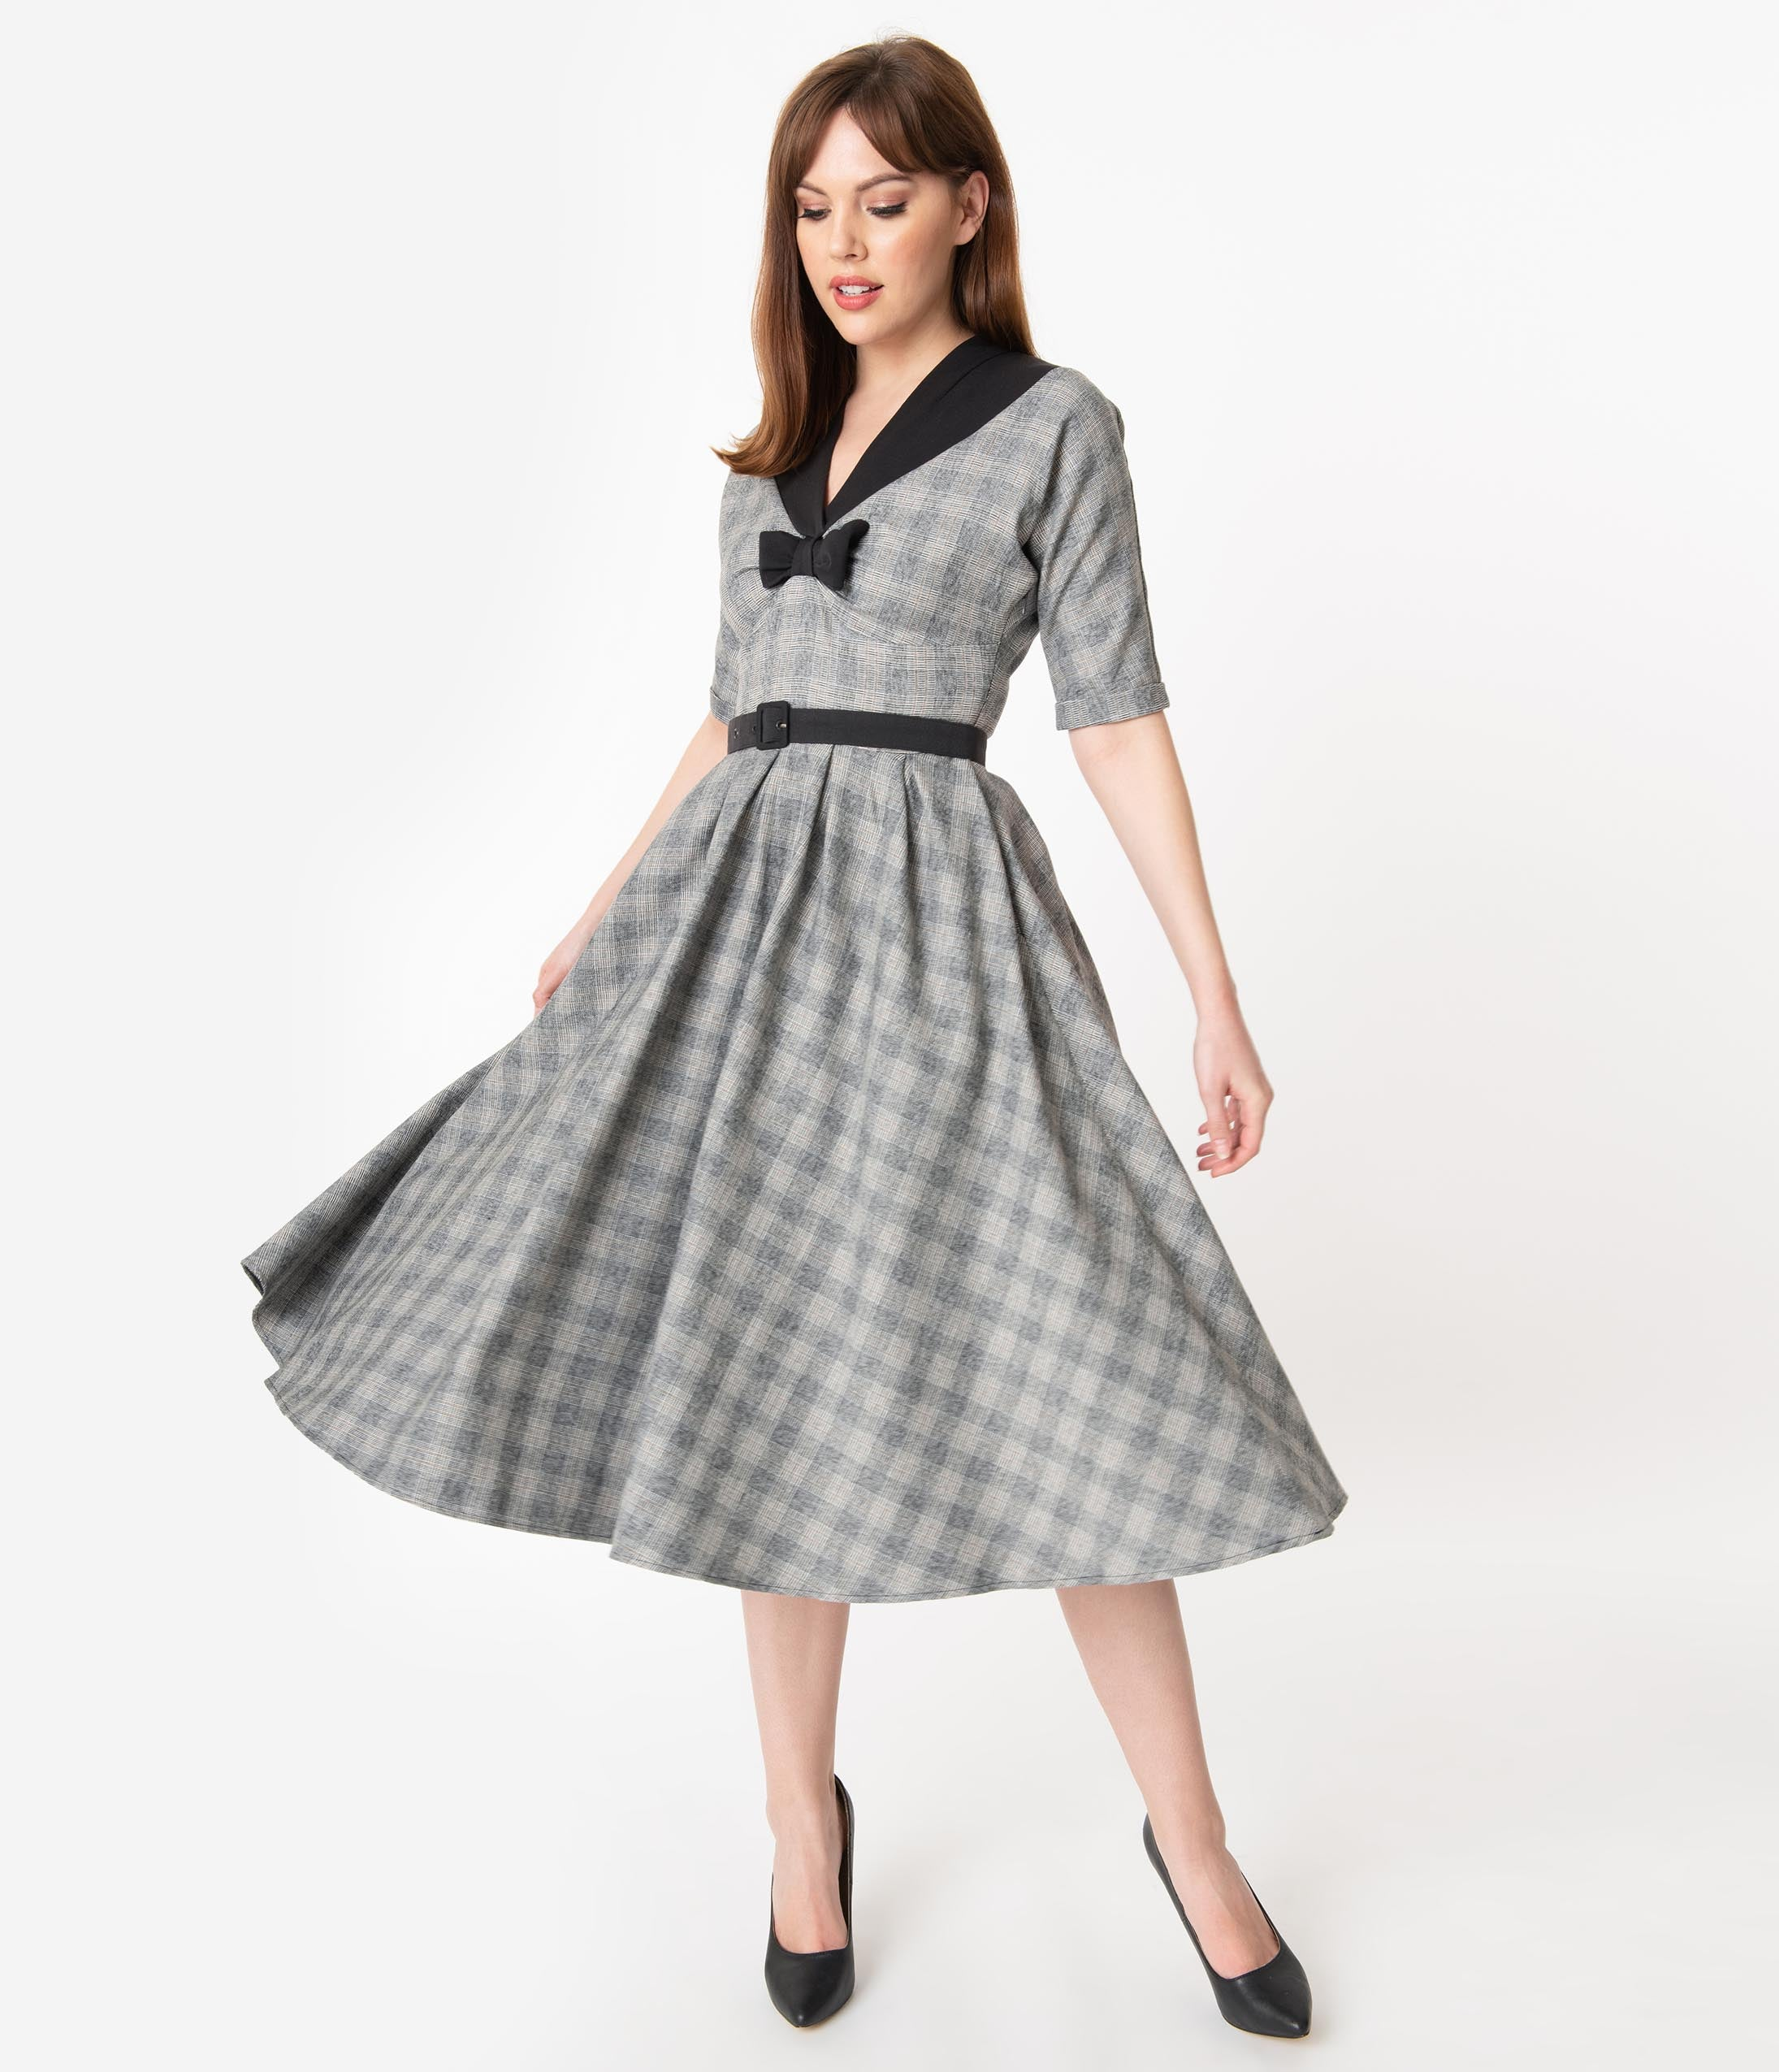 1950s House Dresses and Aprons History Miss Candyfloss 1950S Grey Check Maeby Swing Dress $126.00 AT vintagedancer.com